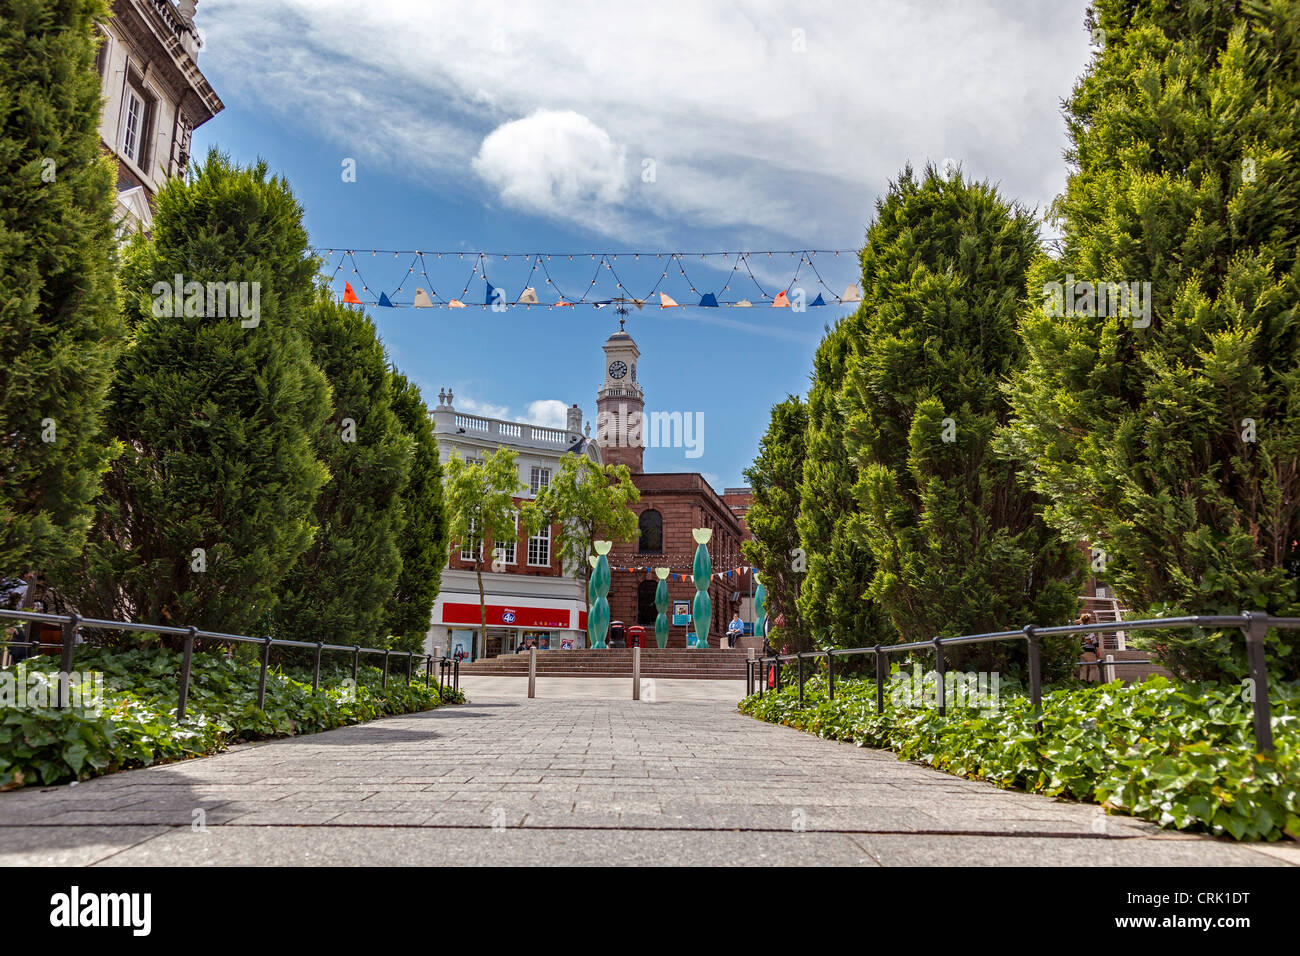 Warrington Town Centre with water feature and The Church of the Holy Trinity, Warrington - Stock Image